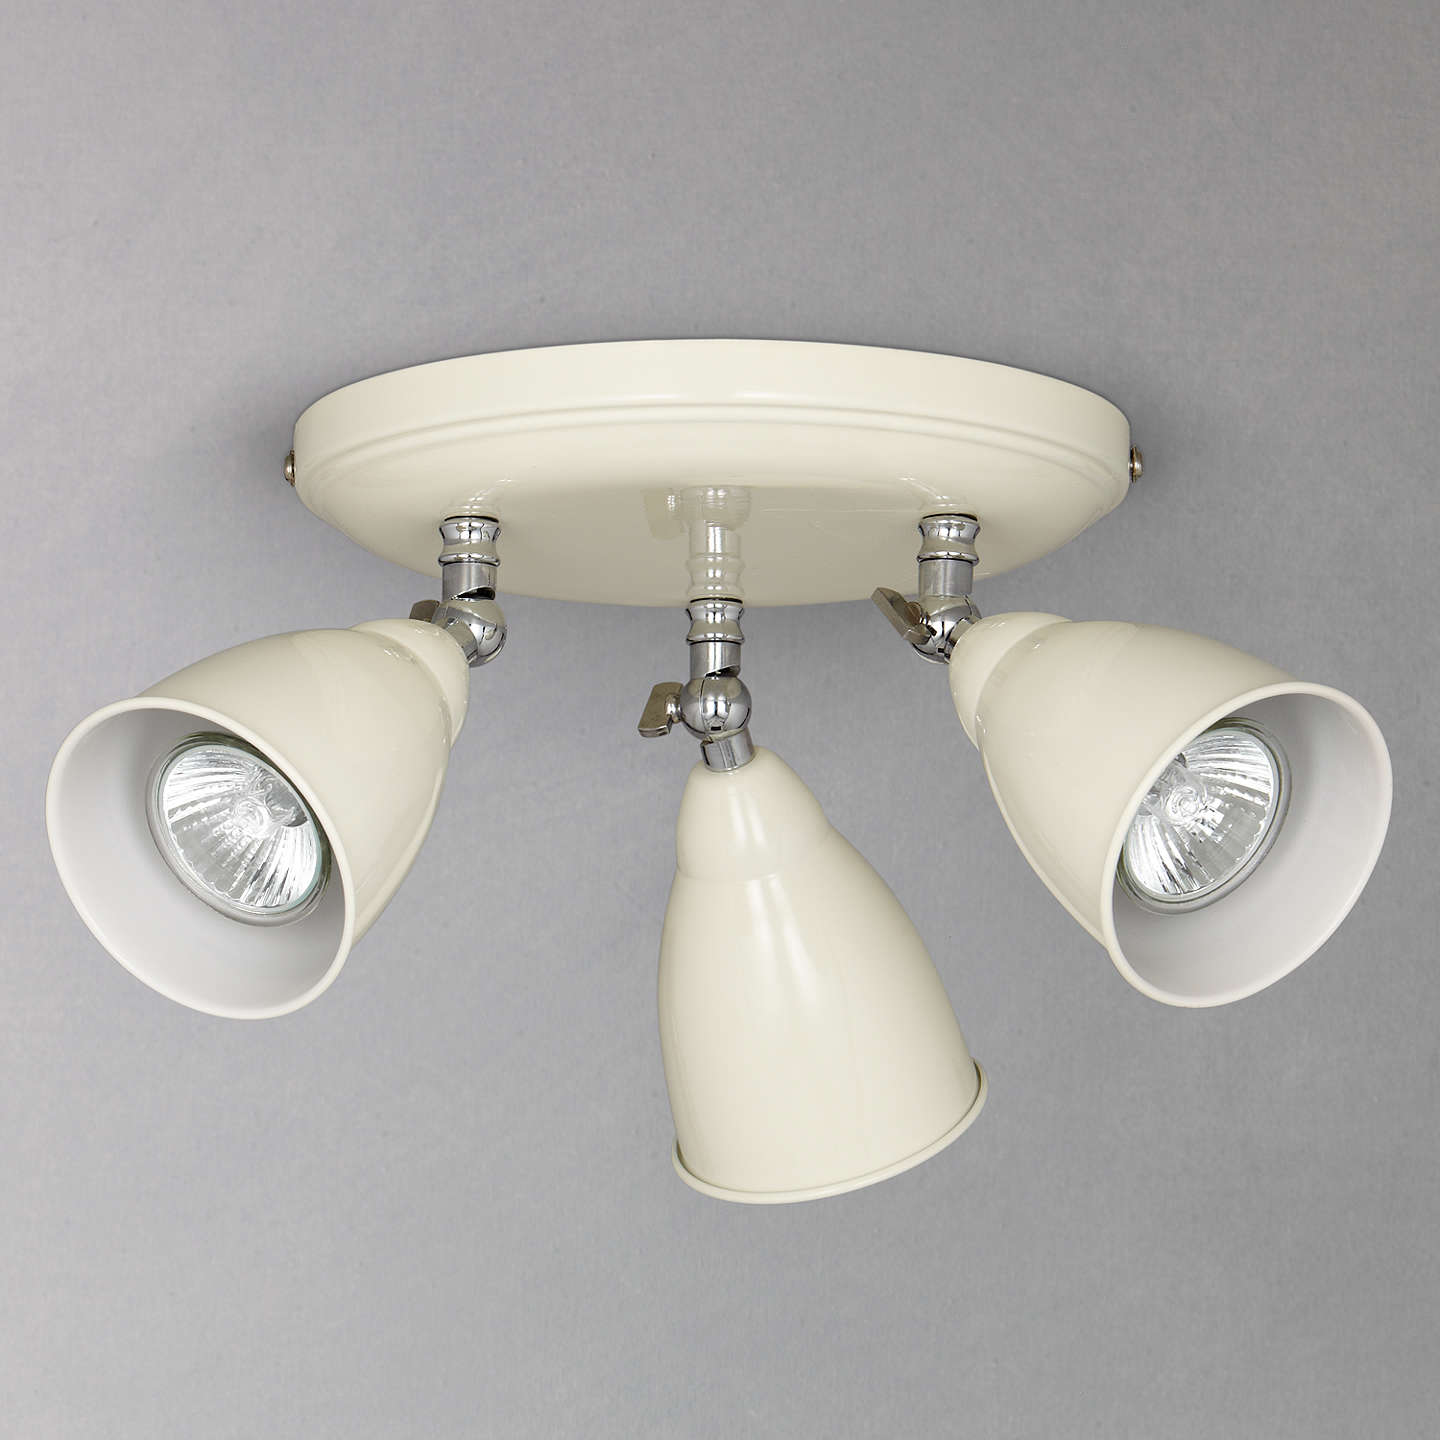 John lewis plymouth 3 led spotlight ceiling plate at john lewis buyjohn lewis plymouth 3 led spotlight ceiling plate ivory online at johnlewis aloadofball Image collections